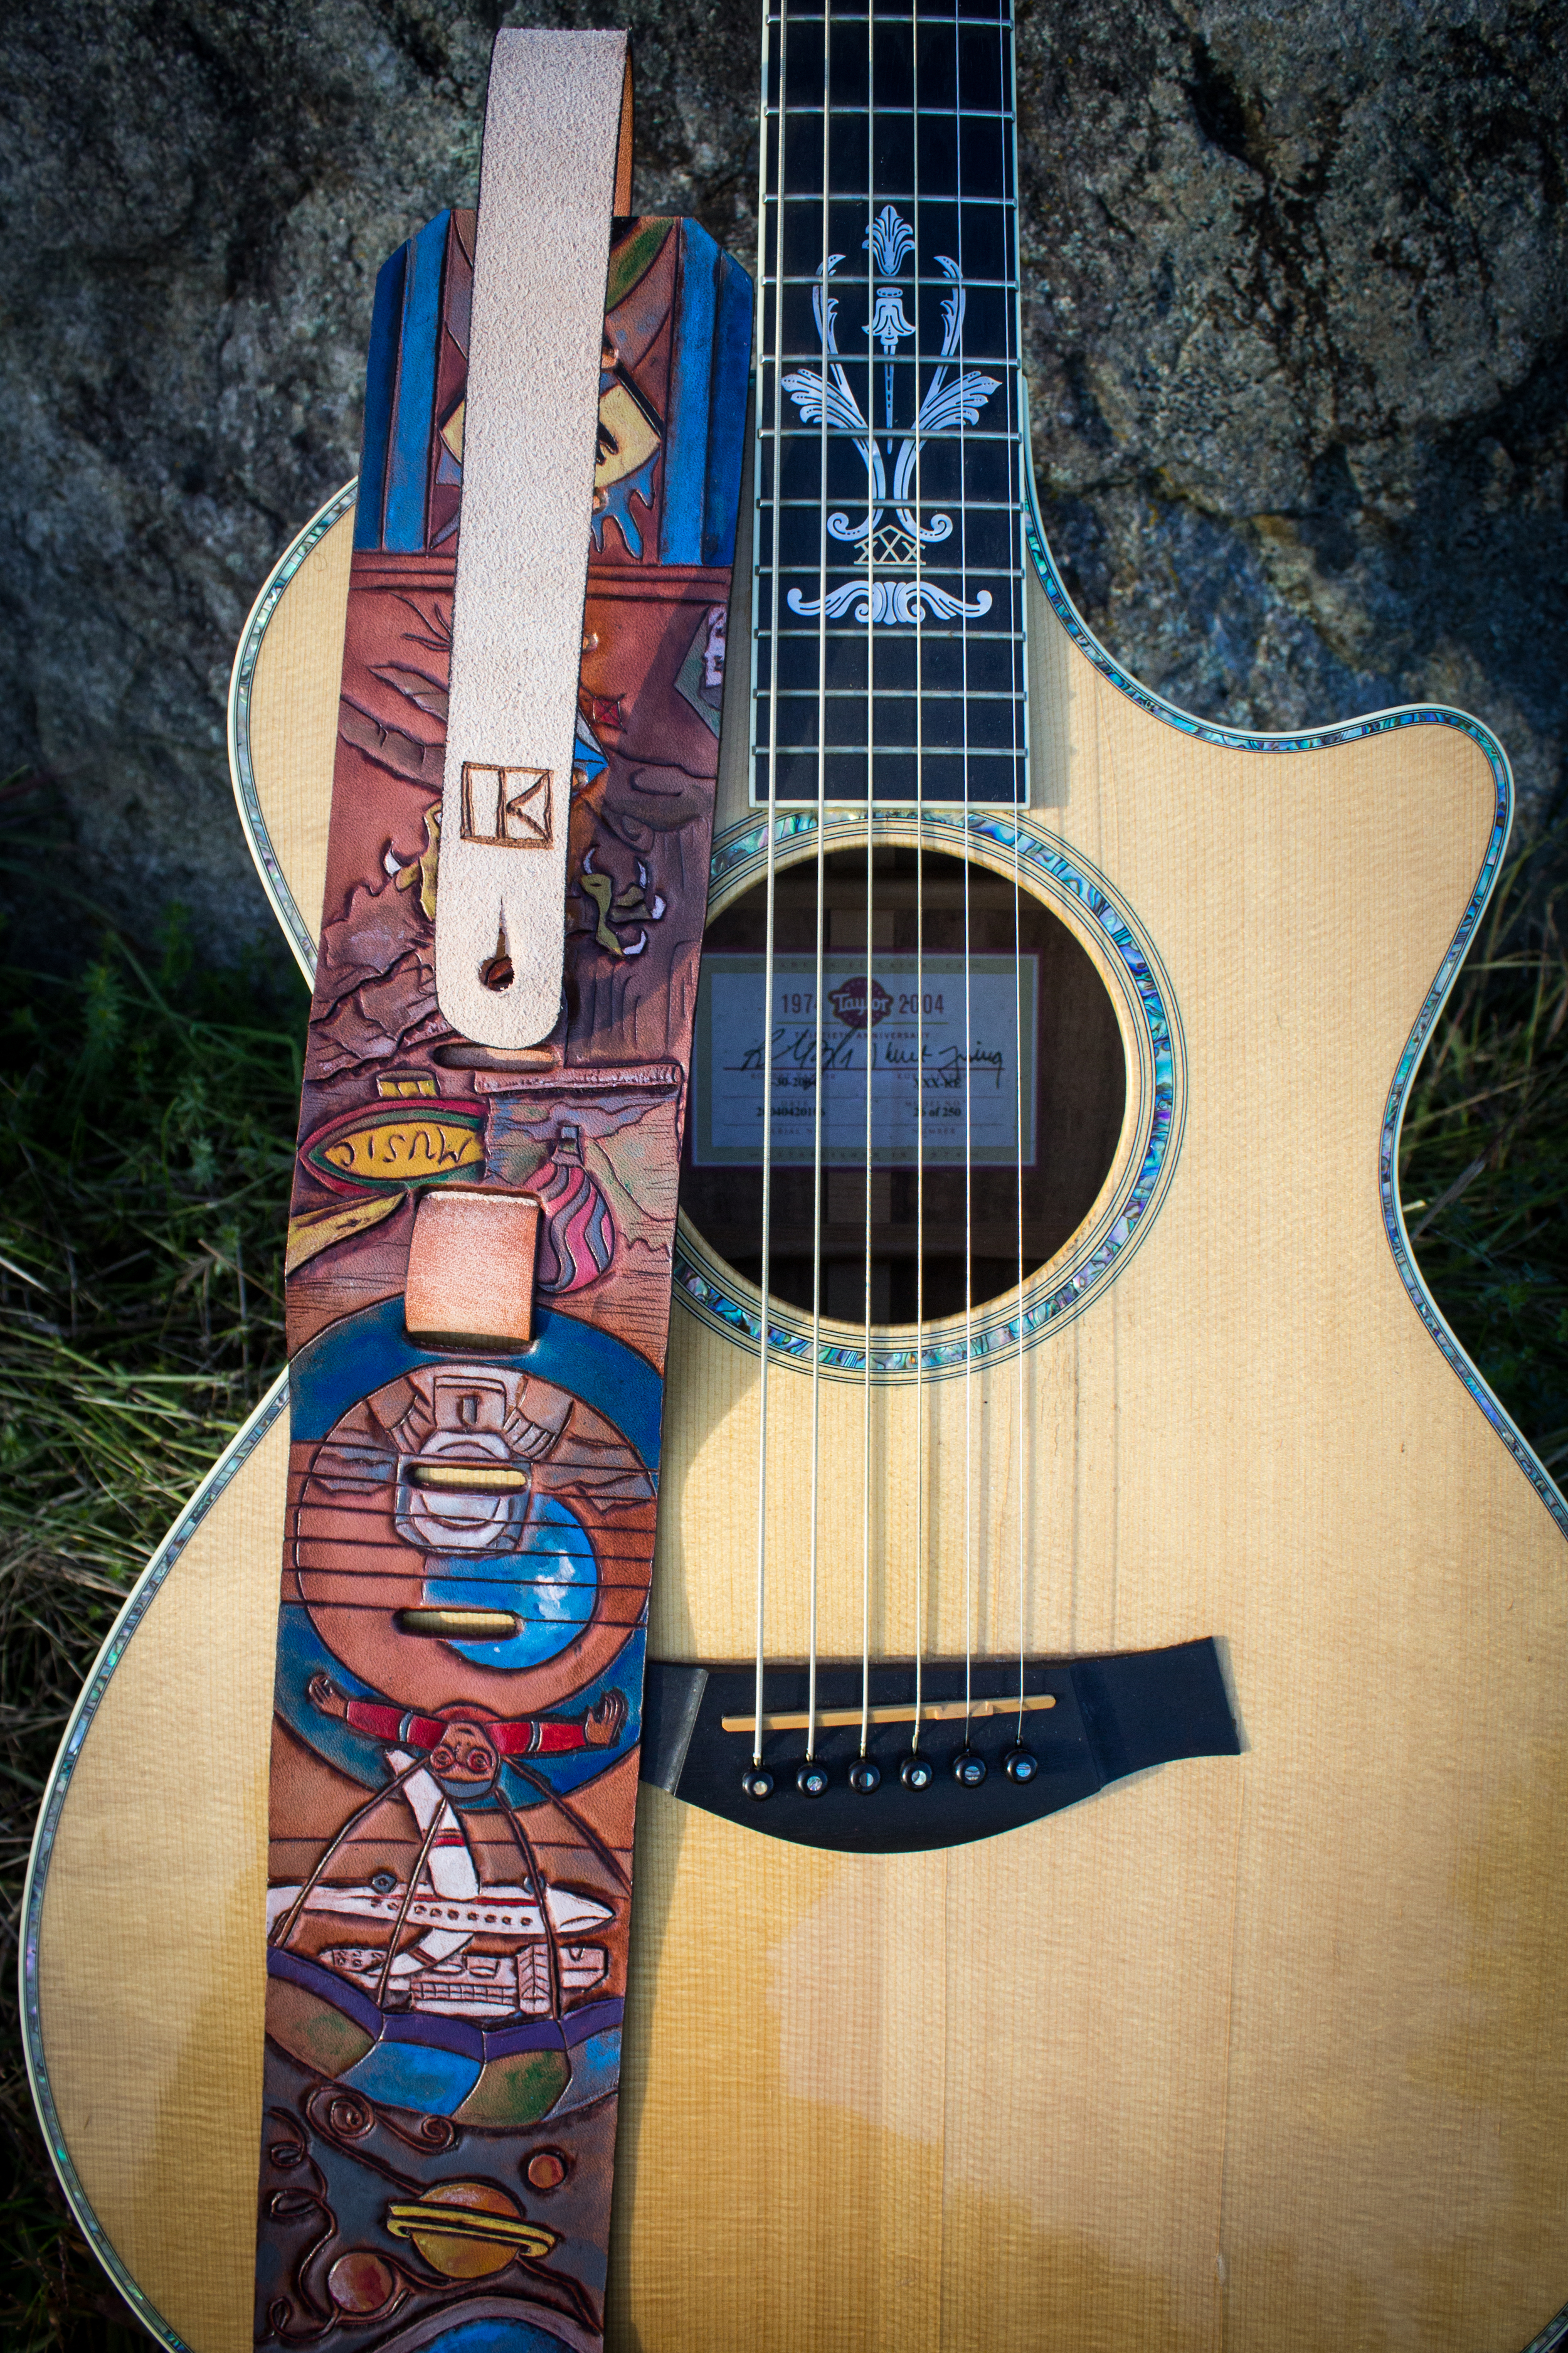 boats-and-airplanes-custom-guitar-strap-9.jpg